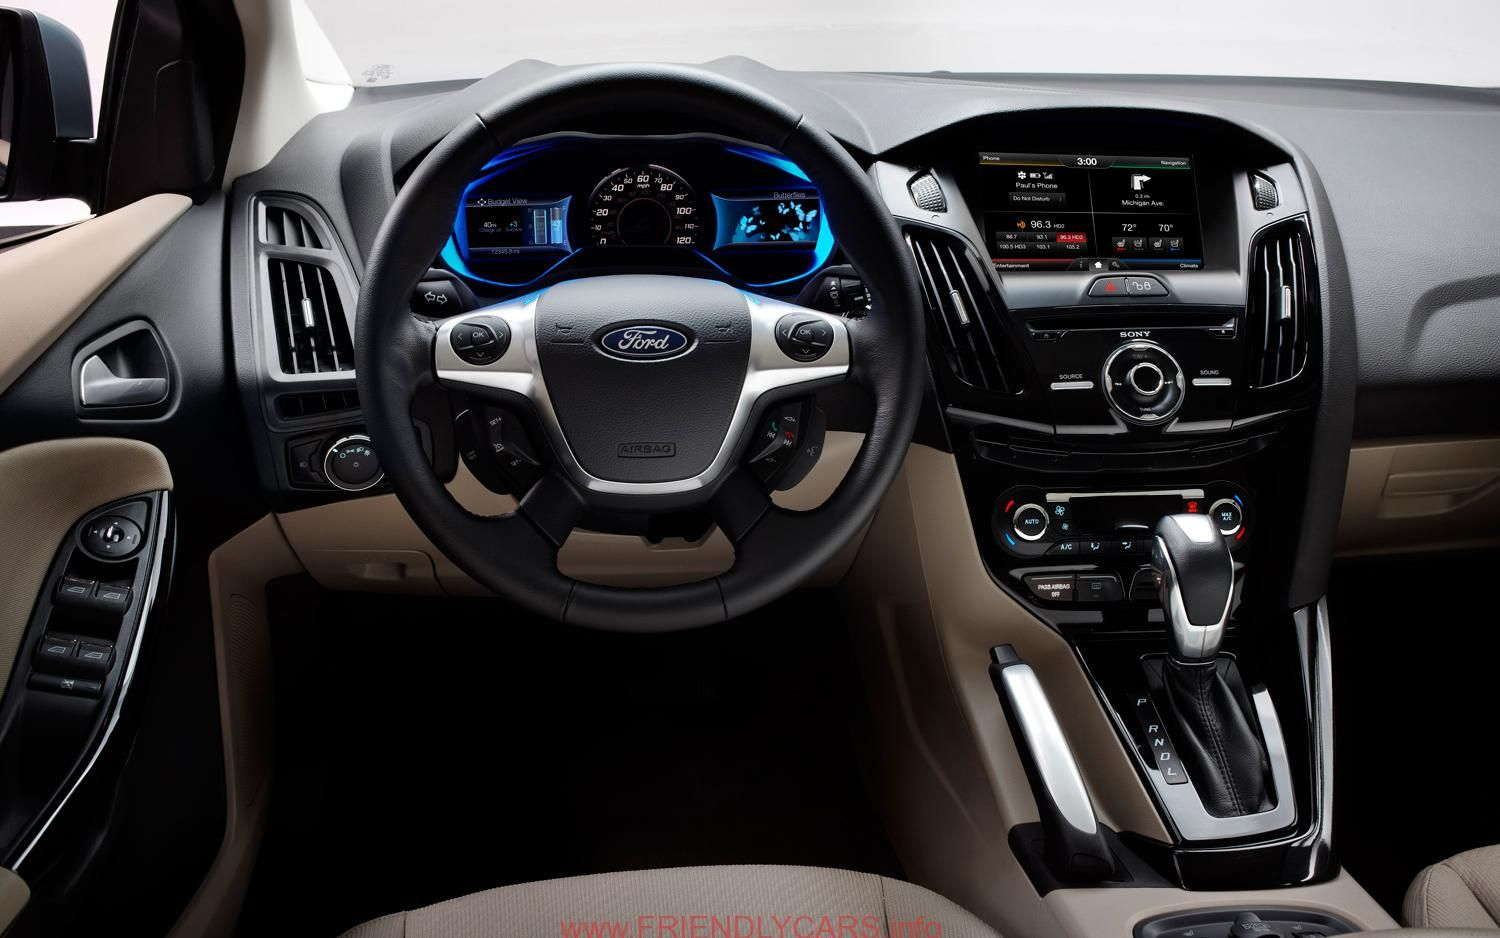 Awesome 2013 Ford Focus Interior Dash Car Images Hd Ford